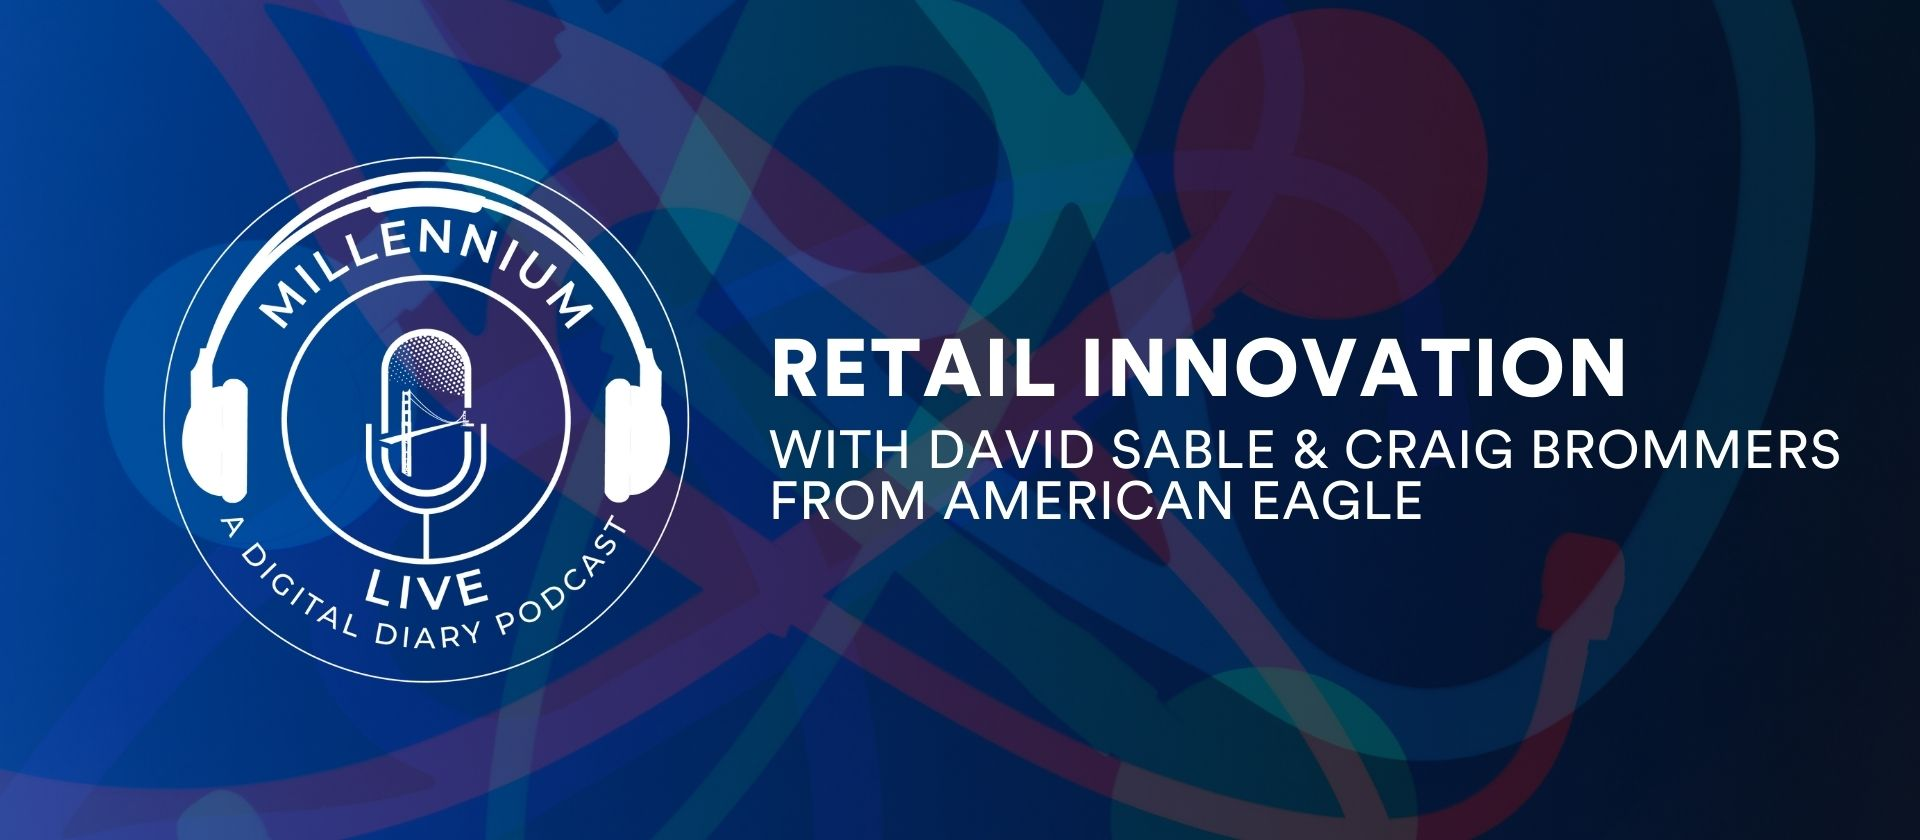 craig-brommers-cmo-american-eagle